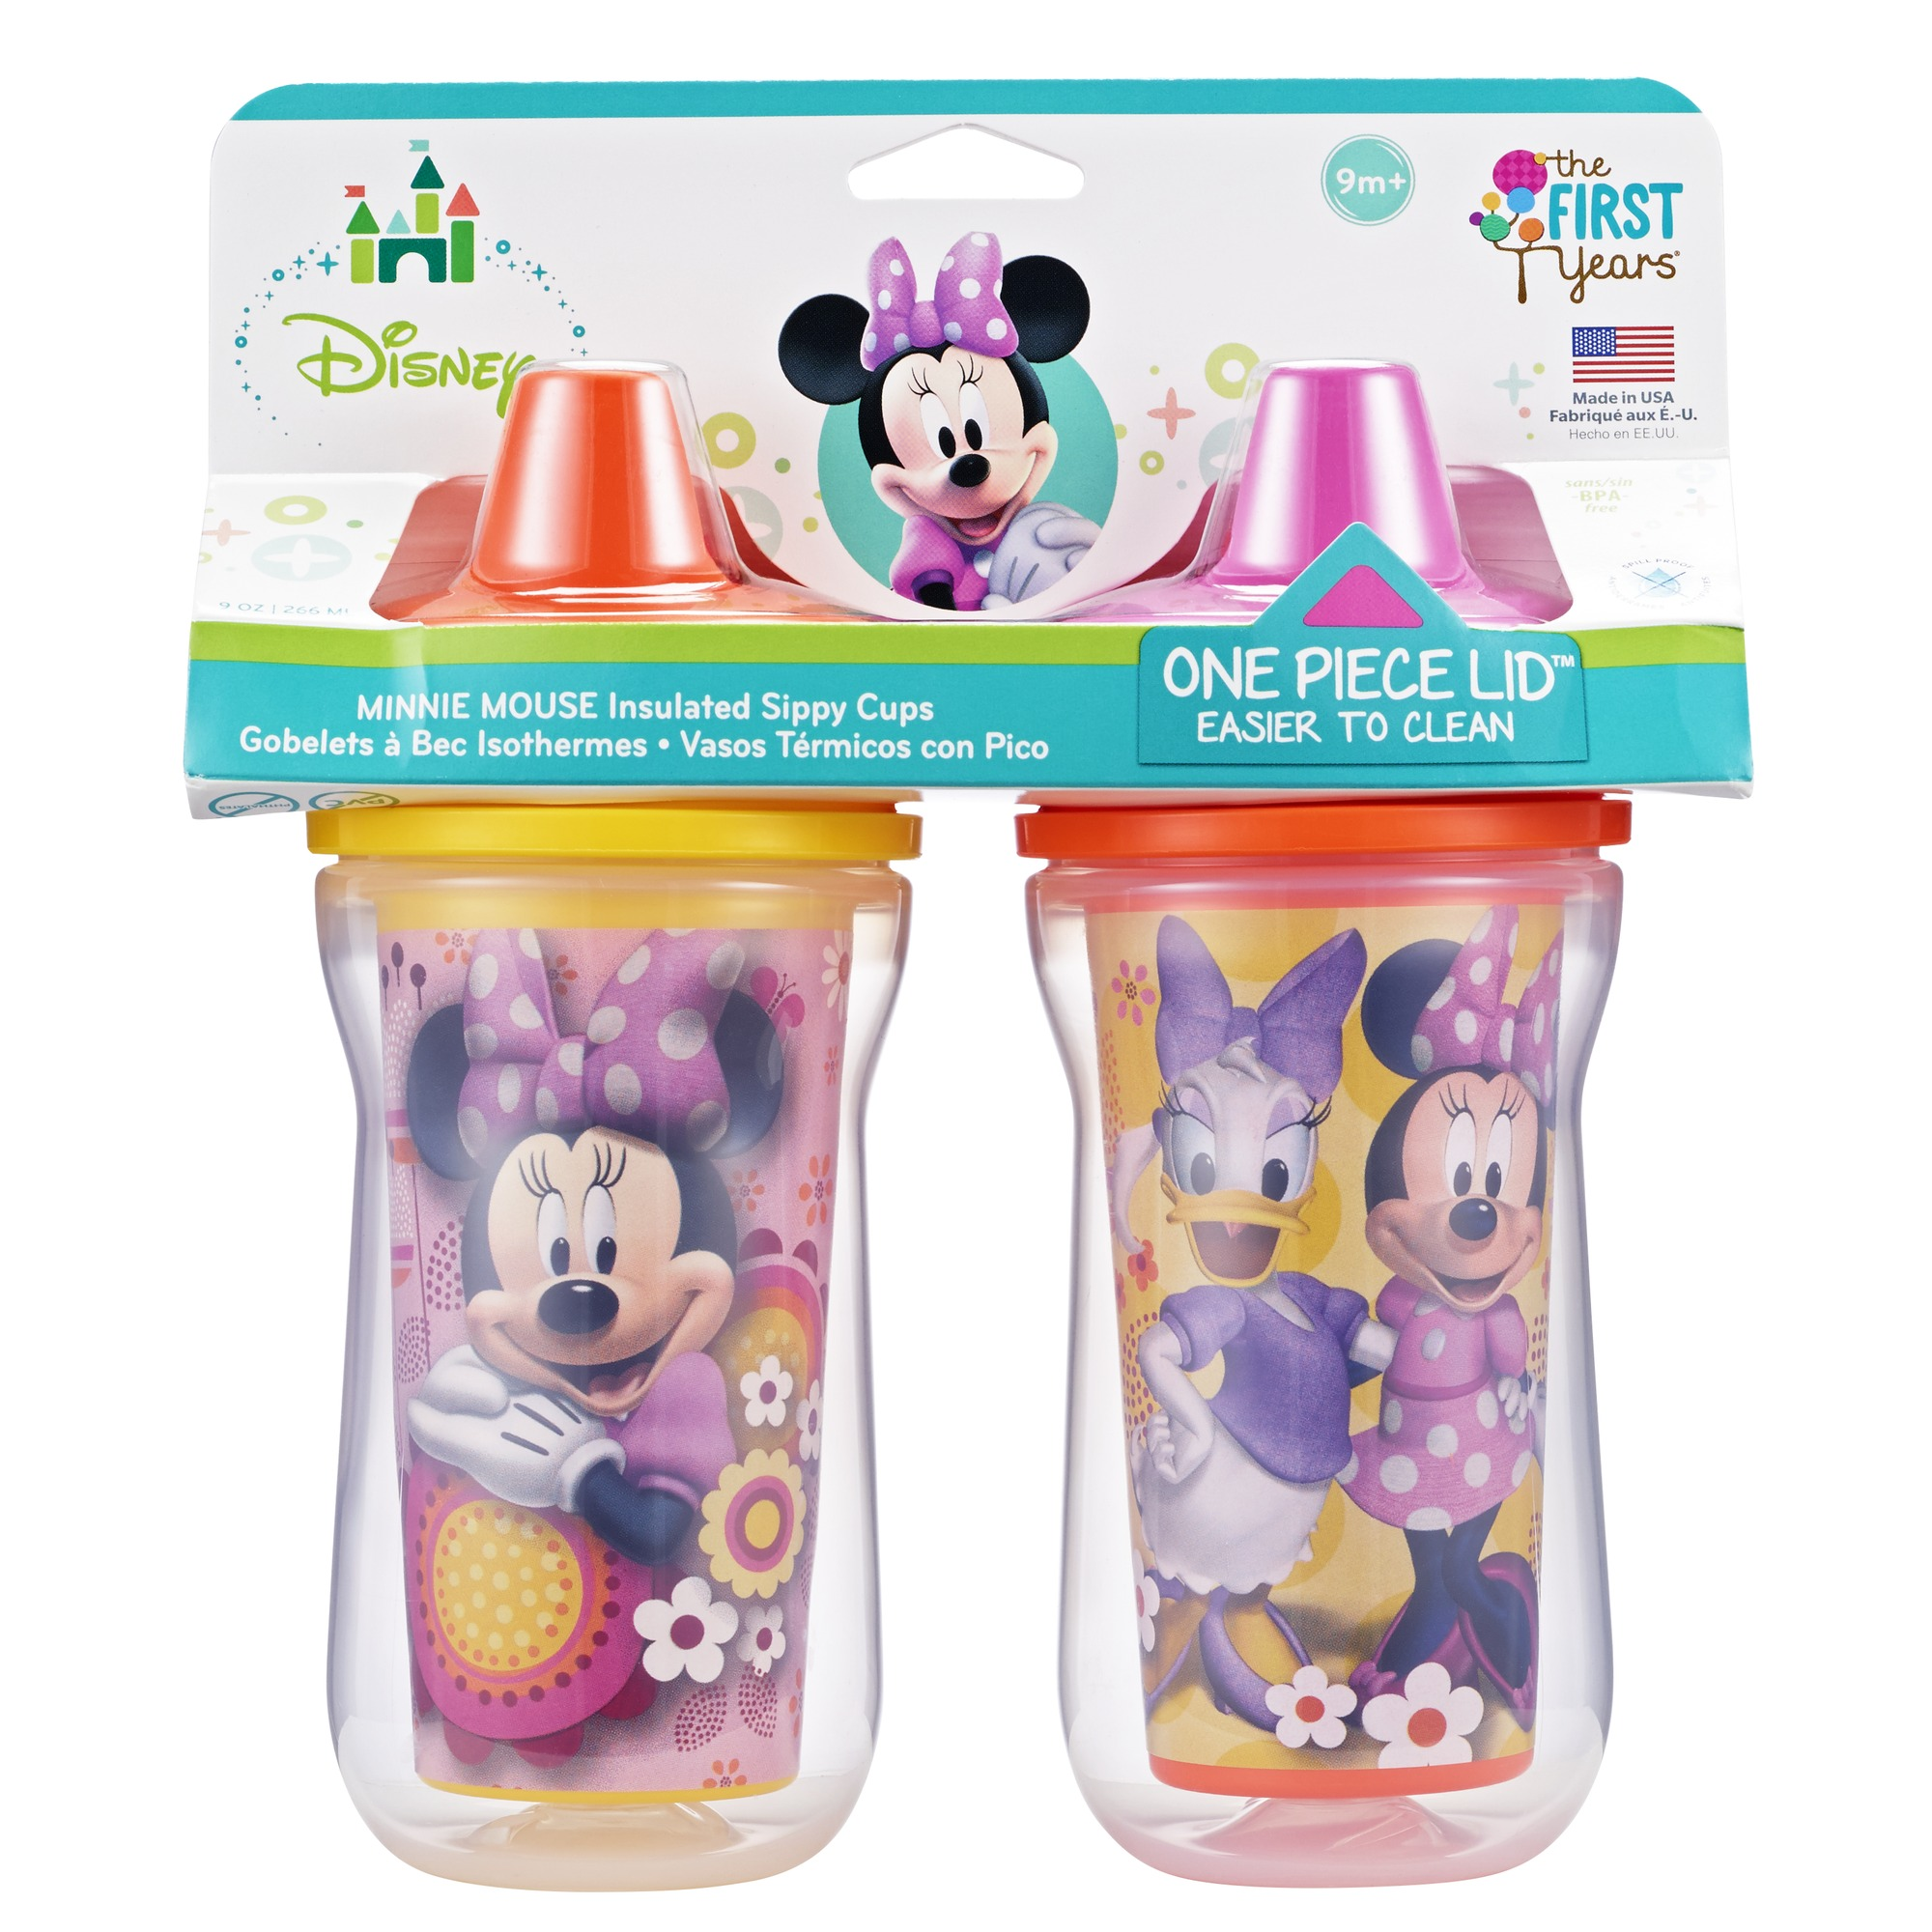 The First Years Disney Insulated Hard Spout Sippy Cup - Minnie Mouse, 2 pack (Color and style may vary)